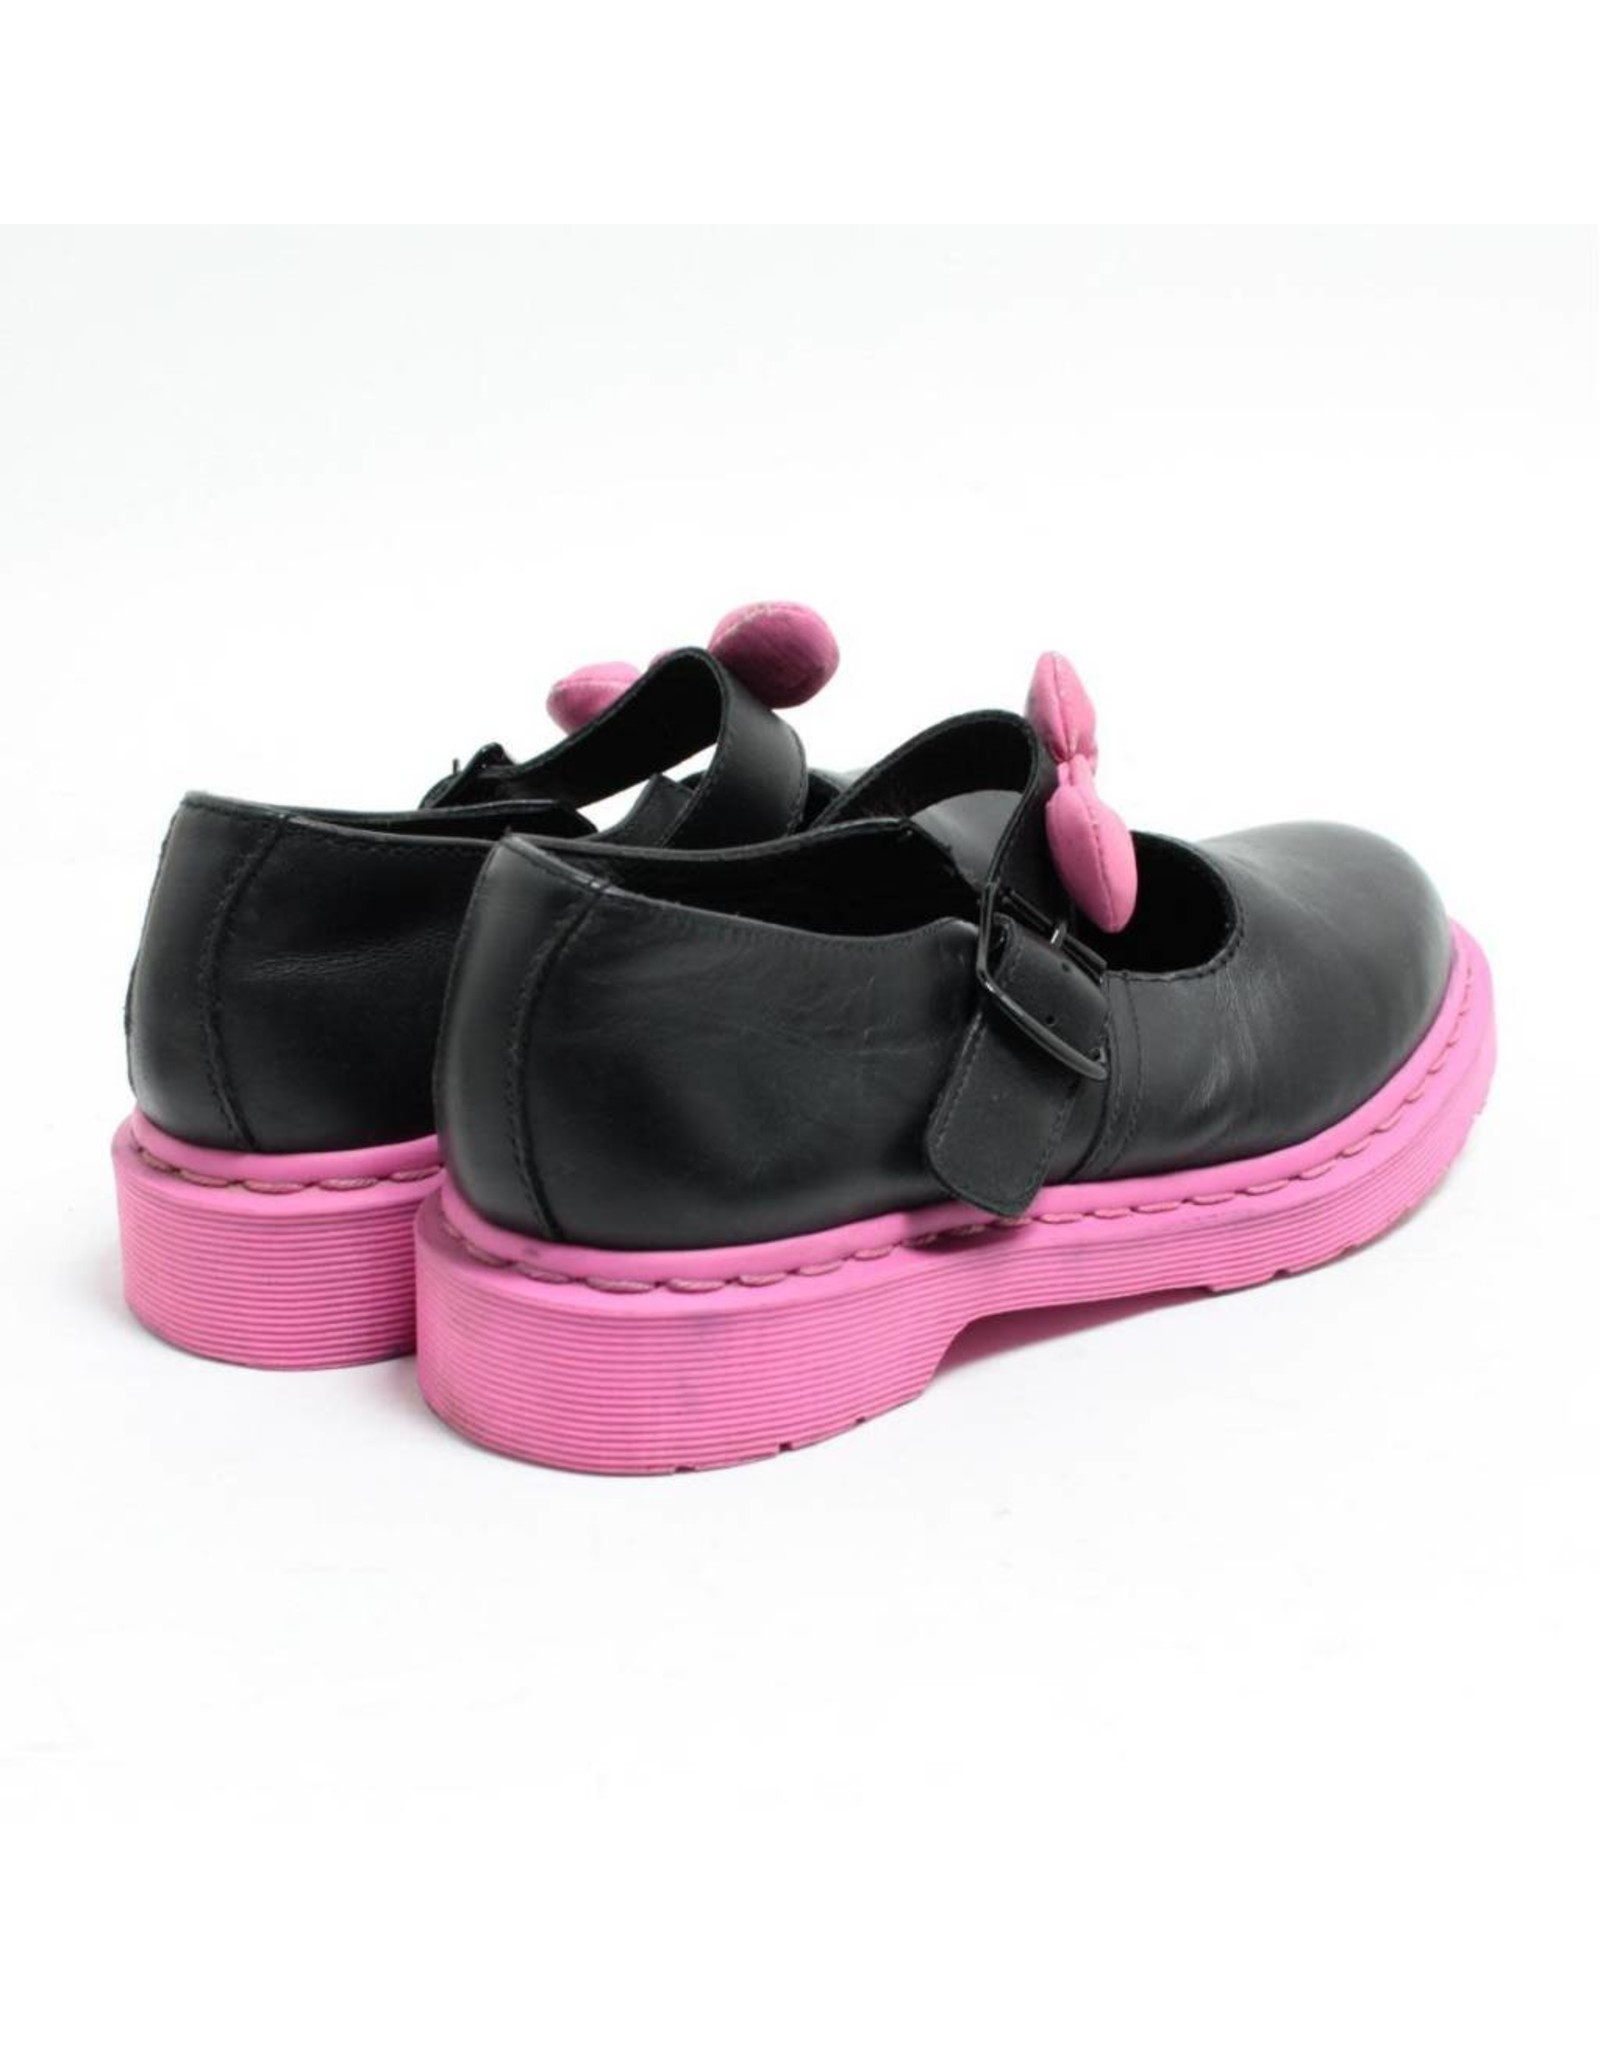 DR. MARTENS MARY-JANE PINK HELLO KITTY 207HK-R13768001